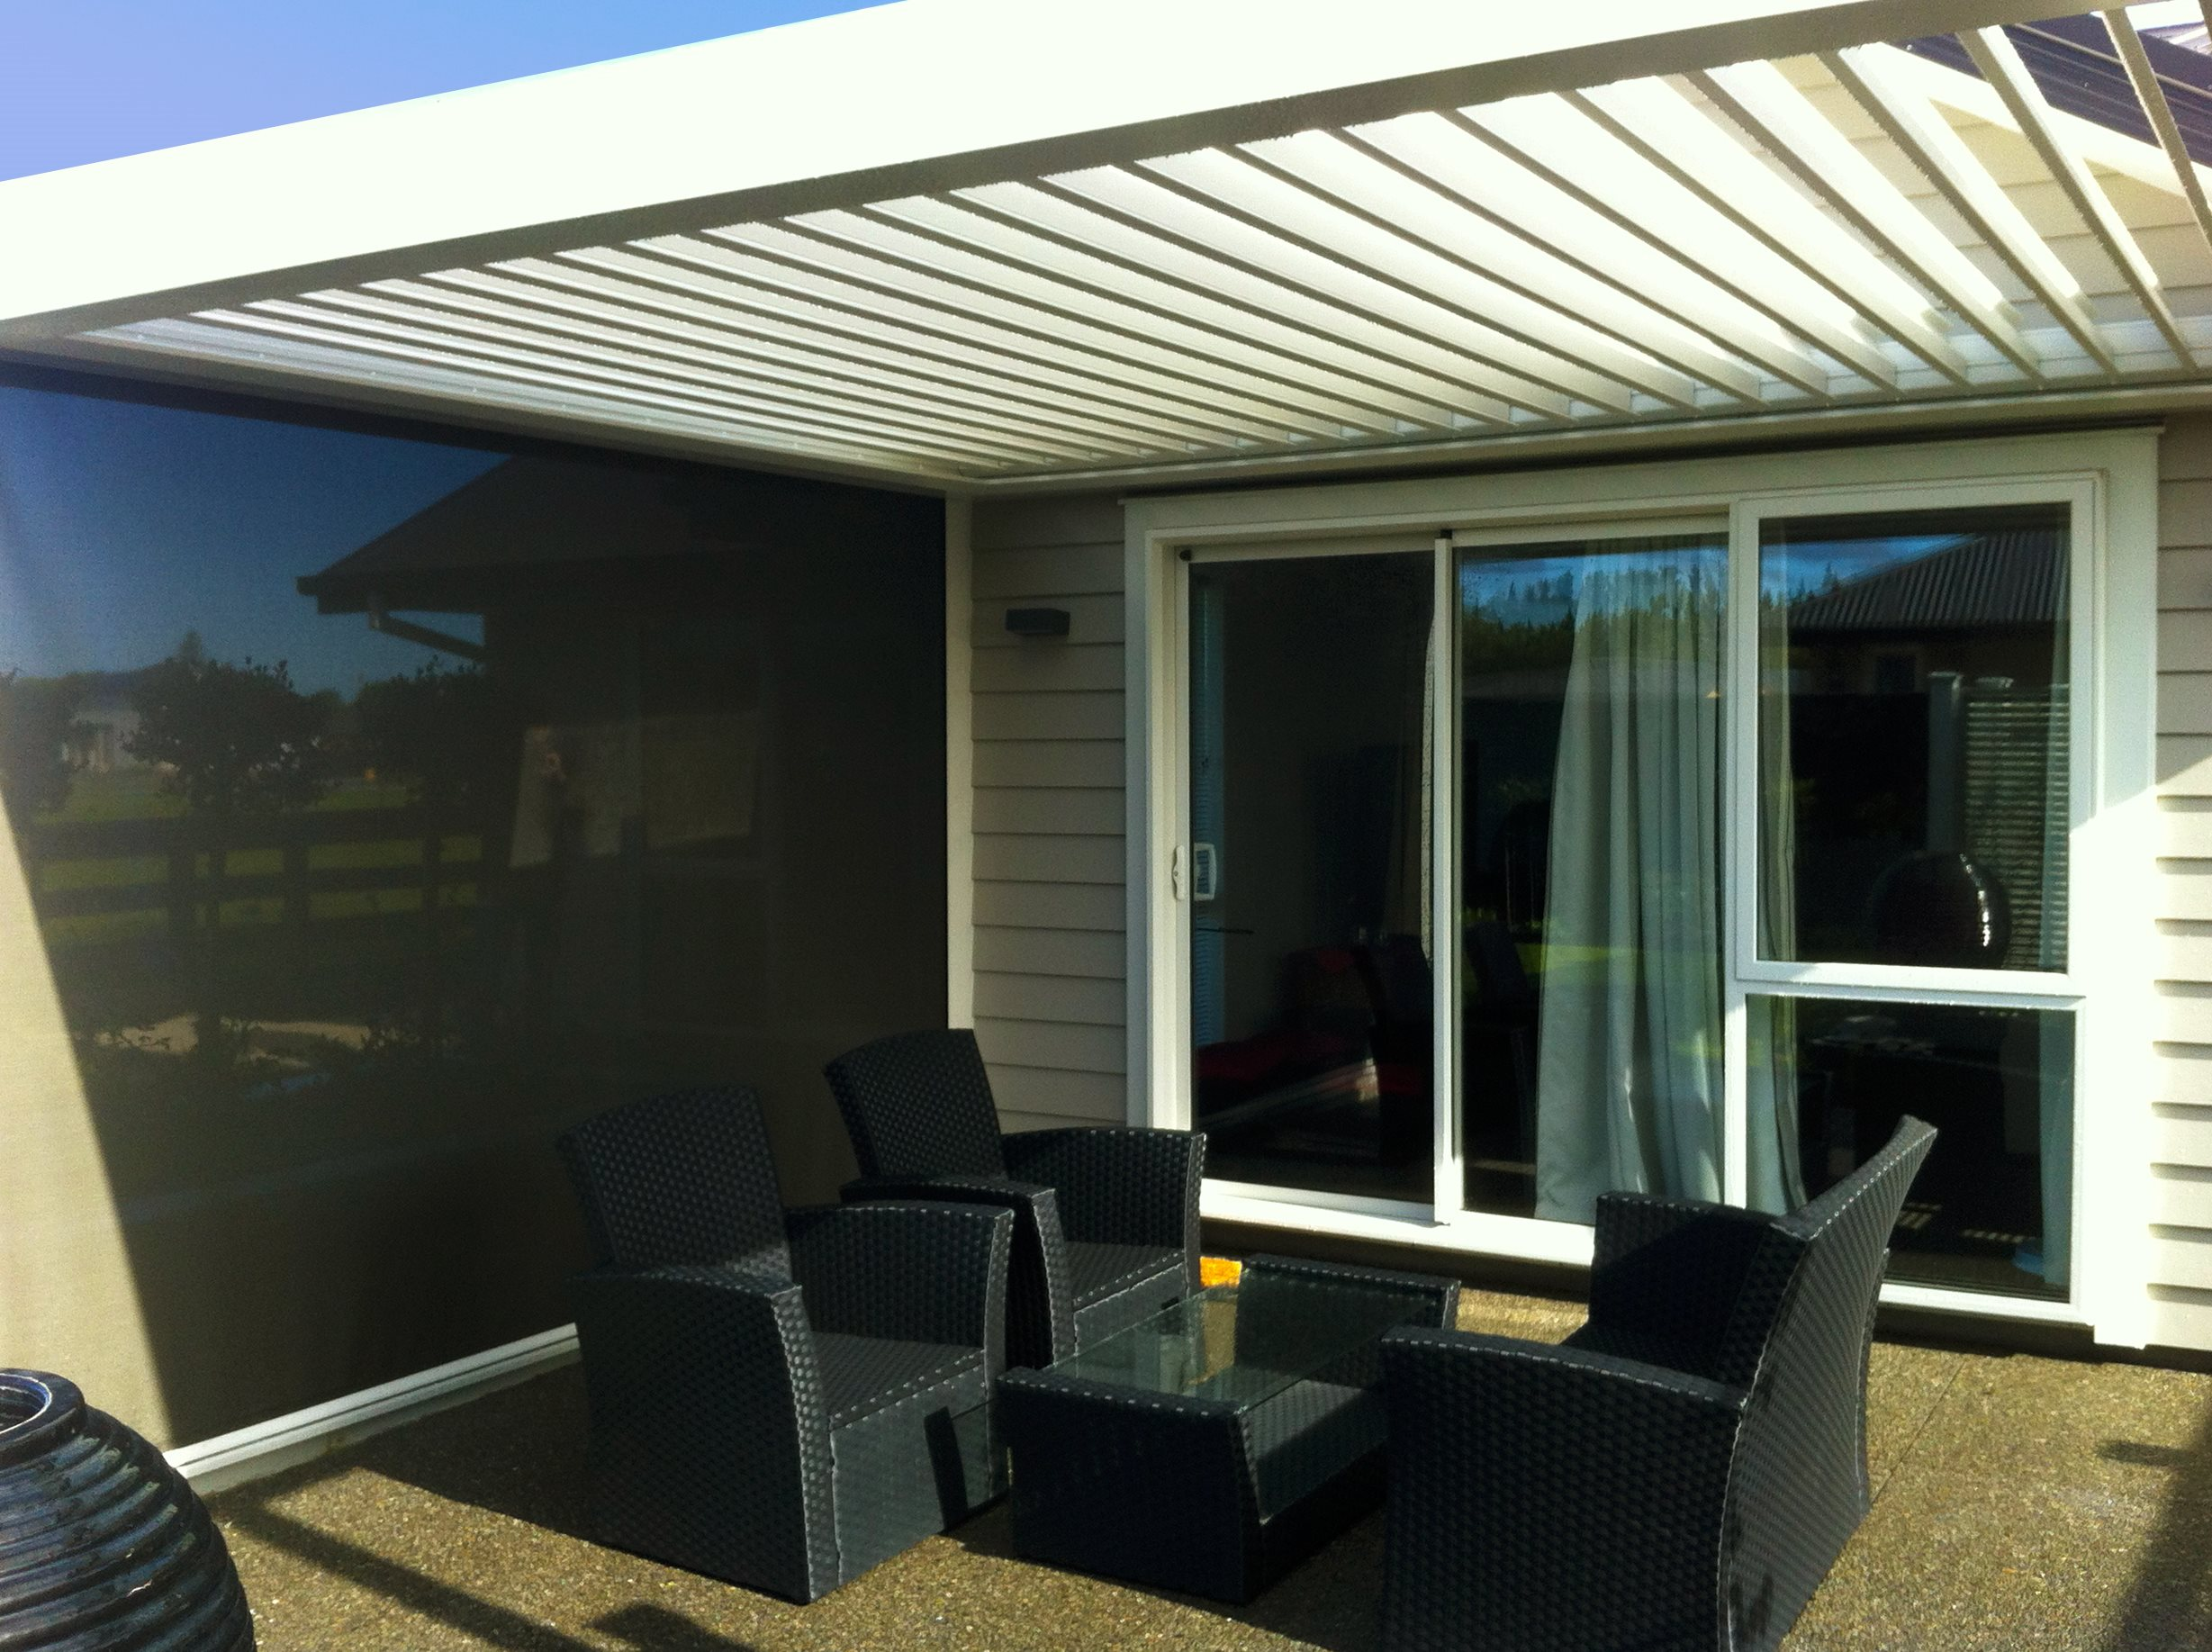 Caldio zip with cover down shading outside sitting area